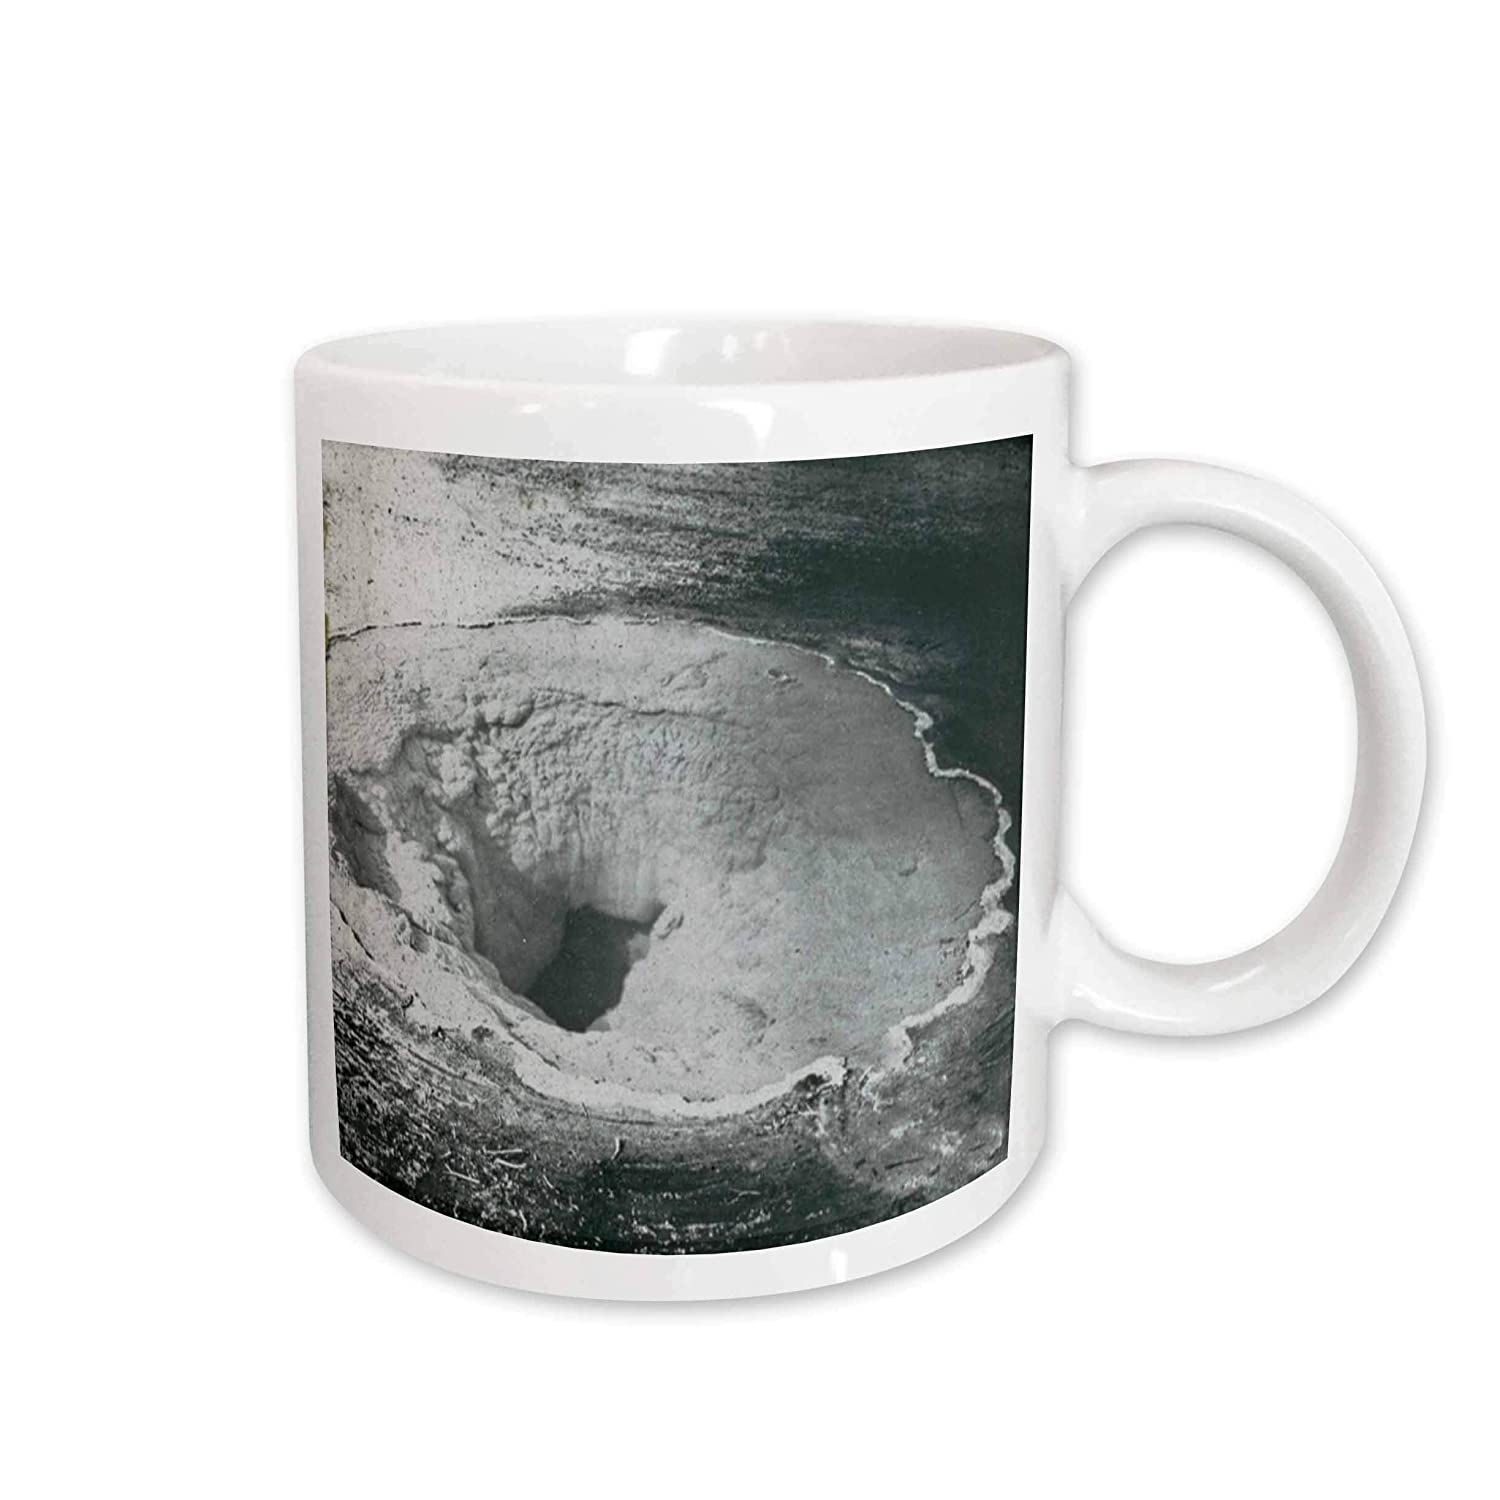 Buy 3drose Vintage Yellowstone National Park Geysers Victor Animatograph Co 5 Ceramic Mug 15 Ounce Online At Low Prices In India Amazon In